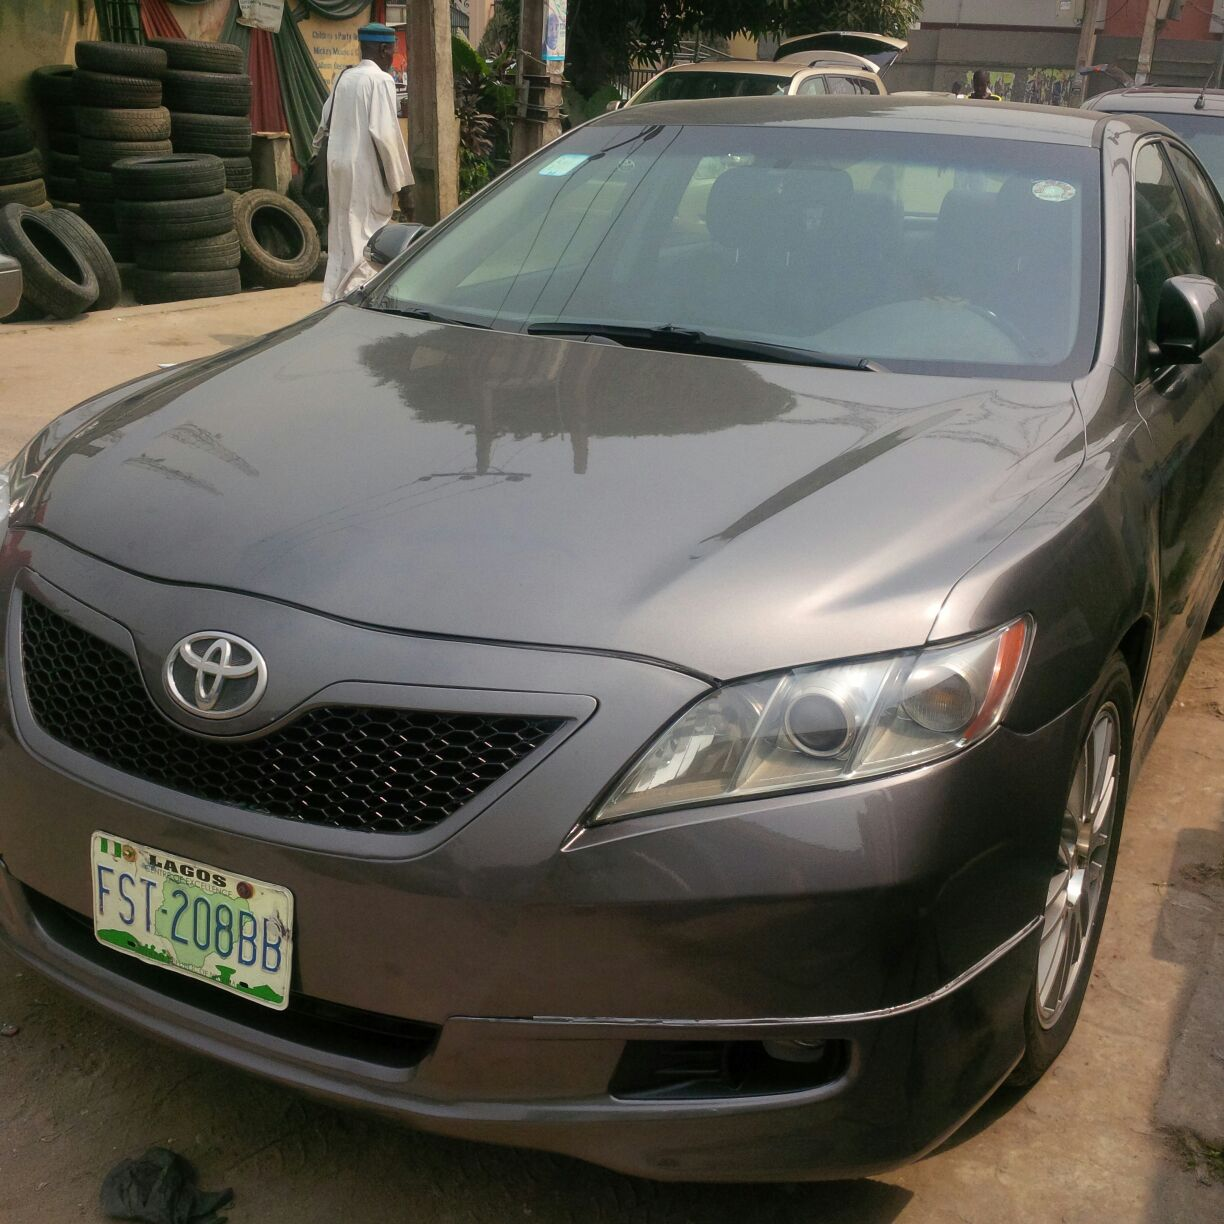 brand new toyota camry muscle grand veloz hitam clean and neat leather n1 650m